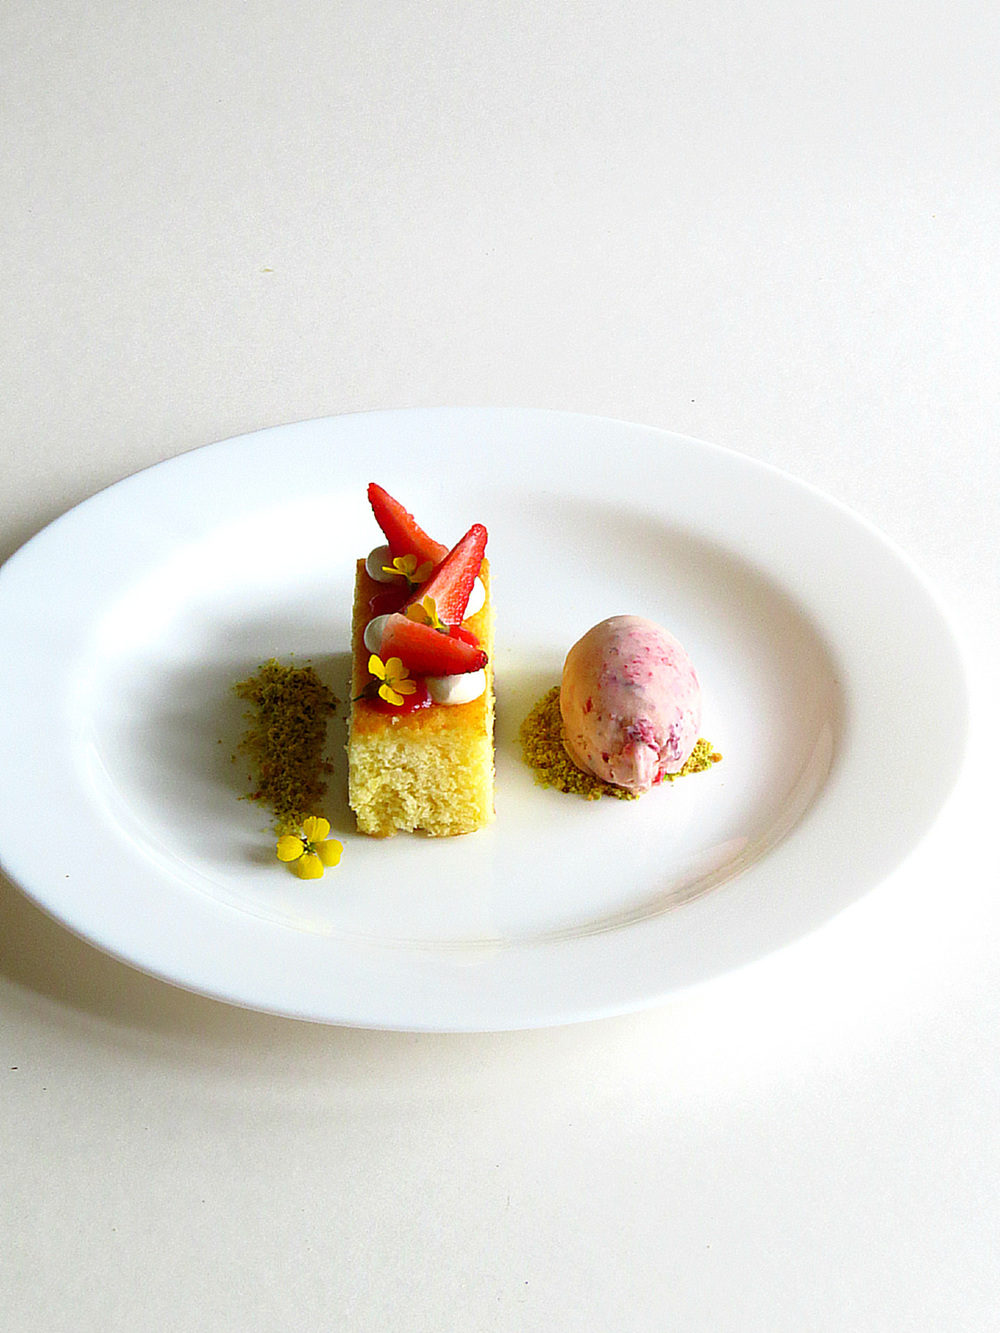 Citrus Madeline Sponge, Strawberries and Cream with Roasted Strawberry and Ginger Ice Cream